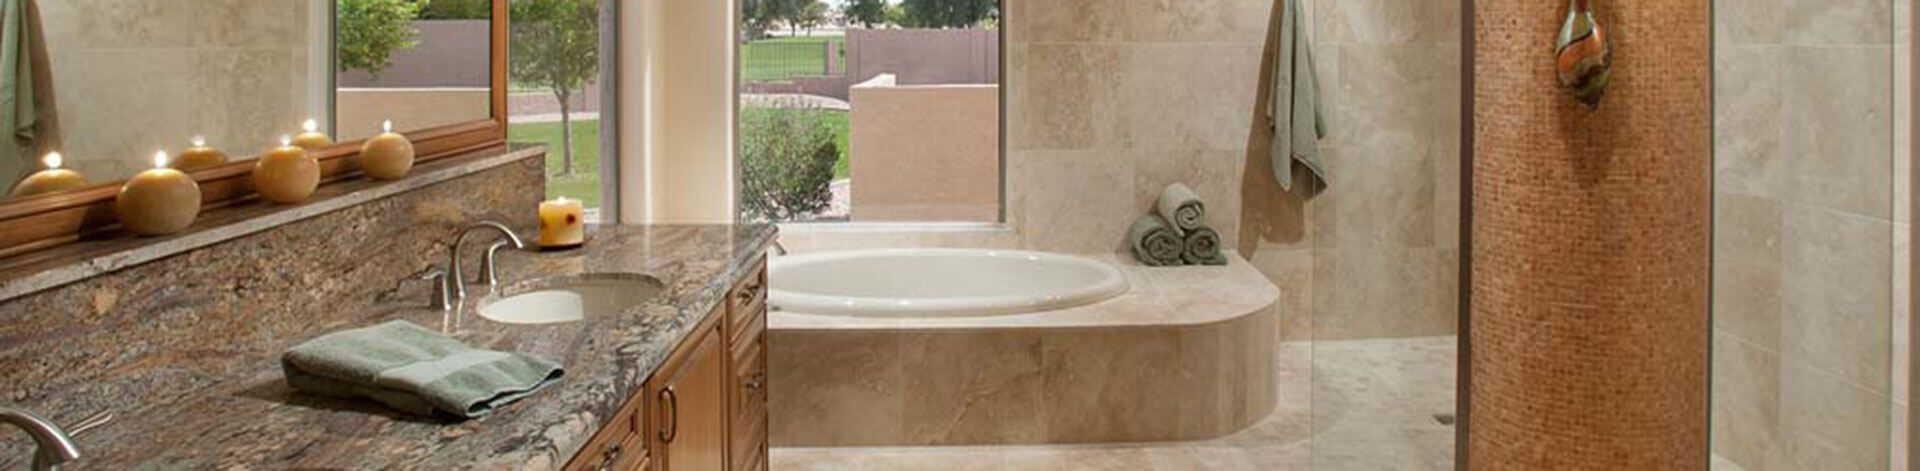 Phoenix Bathroom Remodel Beauteous Bathroom Remodeling In Phoenix & Scottsdale  Republic West Remodeling Design Decoration